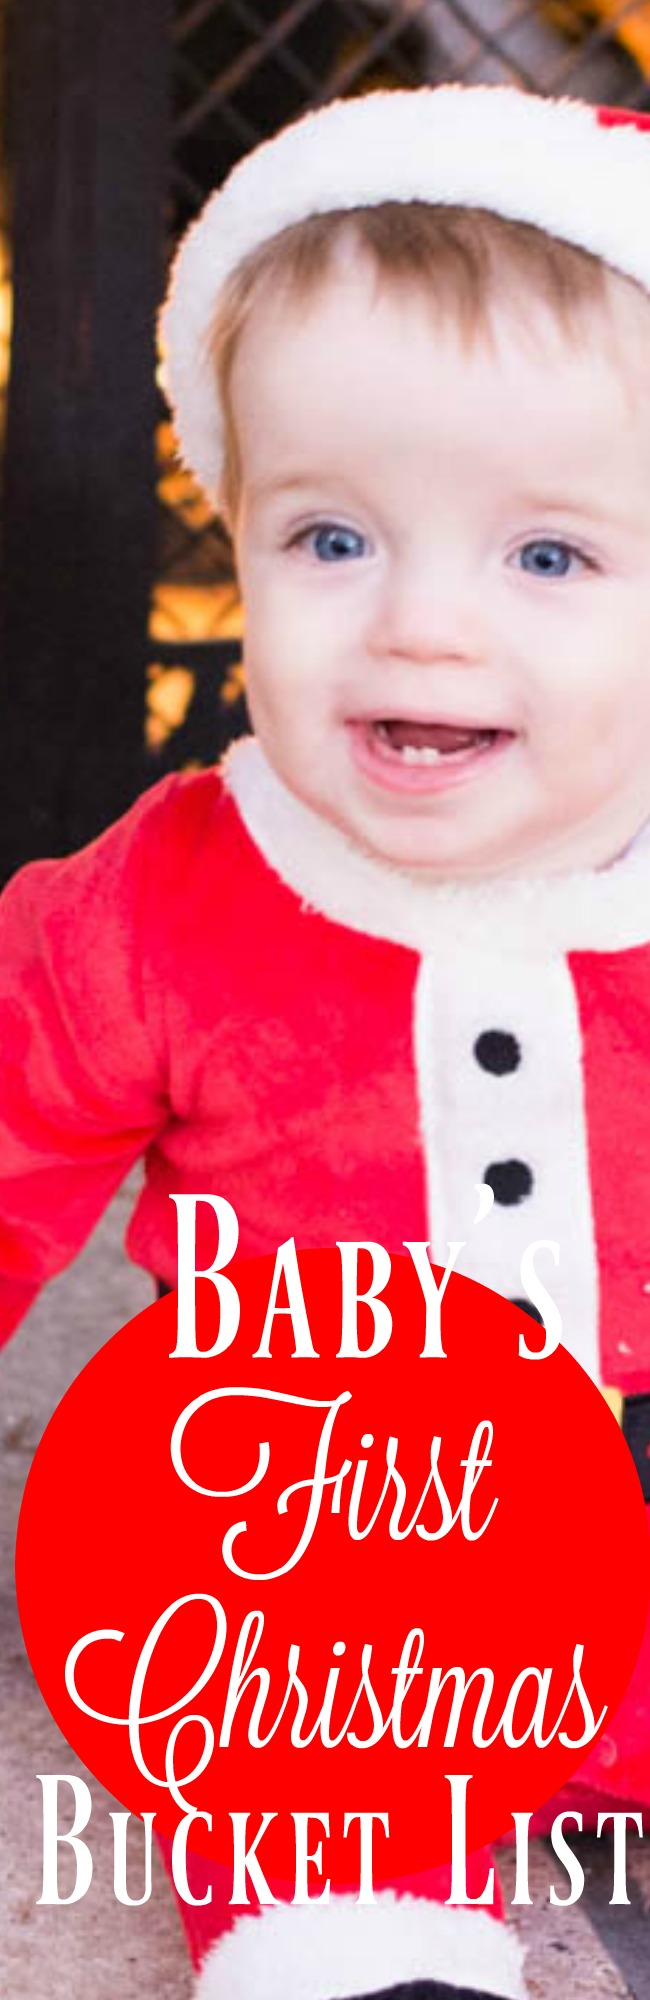 Idea's for baby's first christmas - baby's first Christmas bucketlist via @clarkscondensed